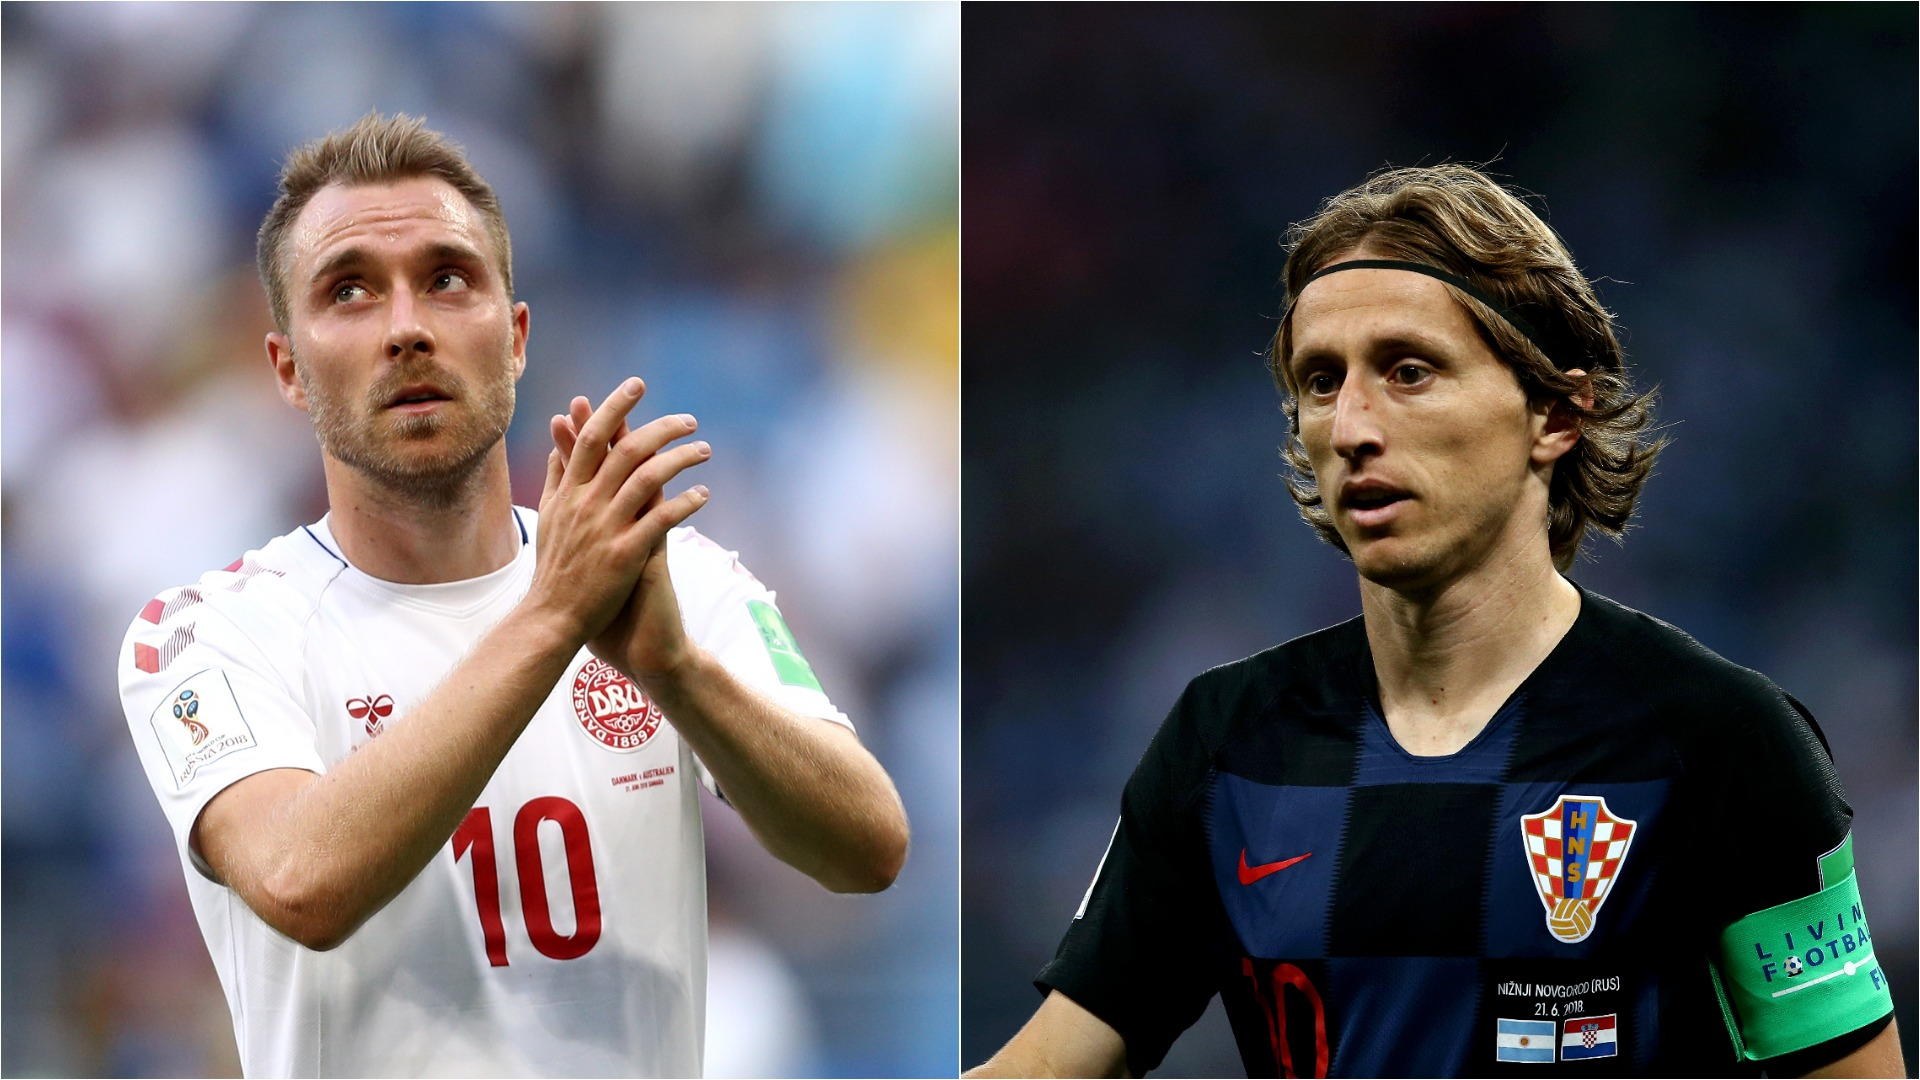 Croatia 1-1 Denmark FIFA World Cup 2018 live match updates